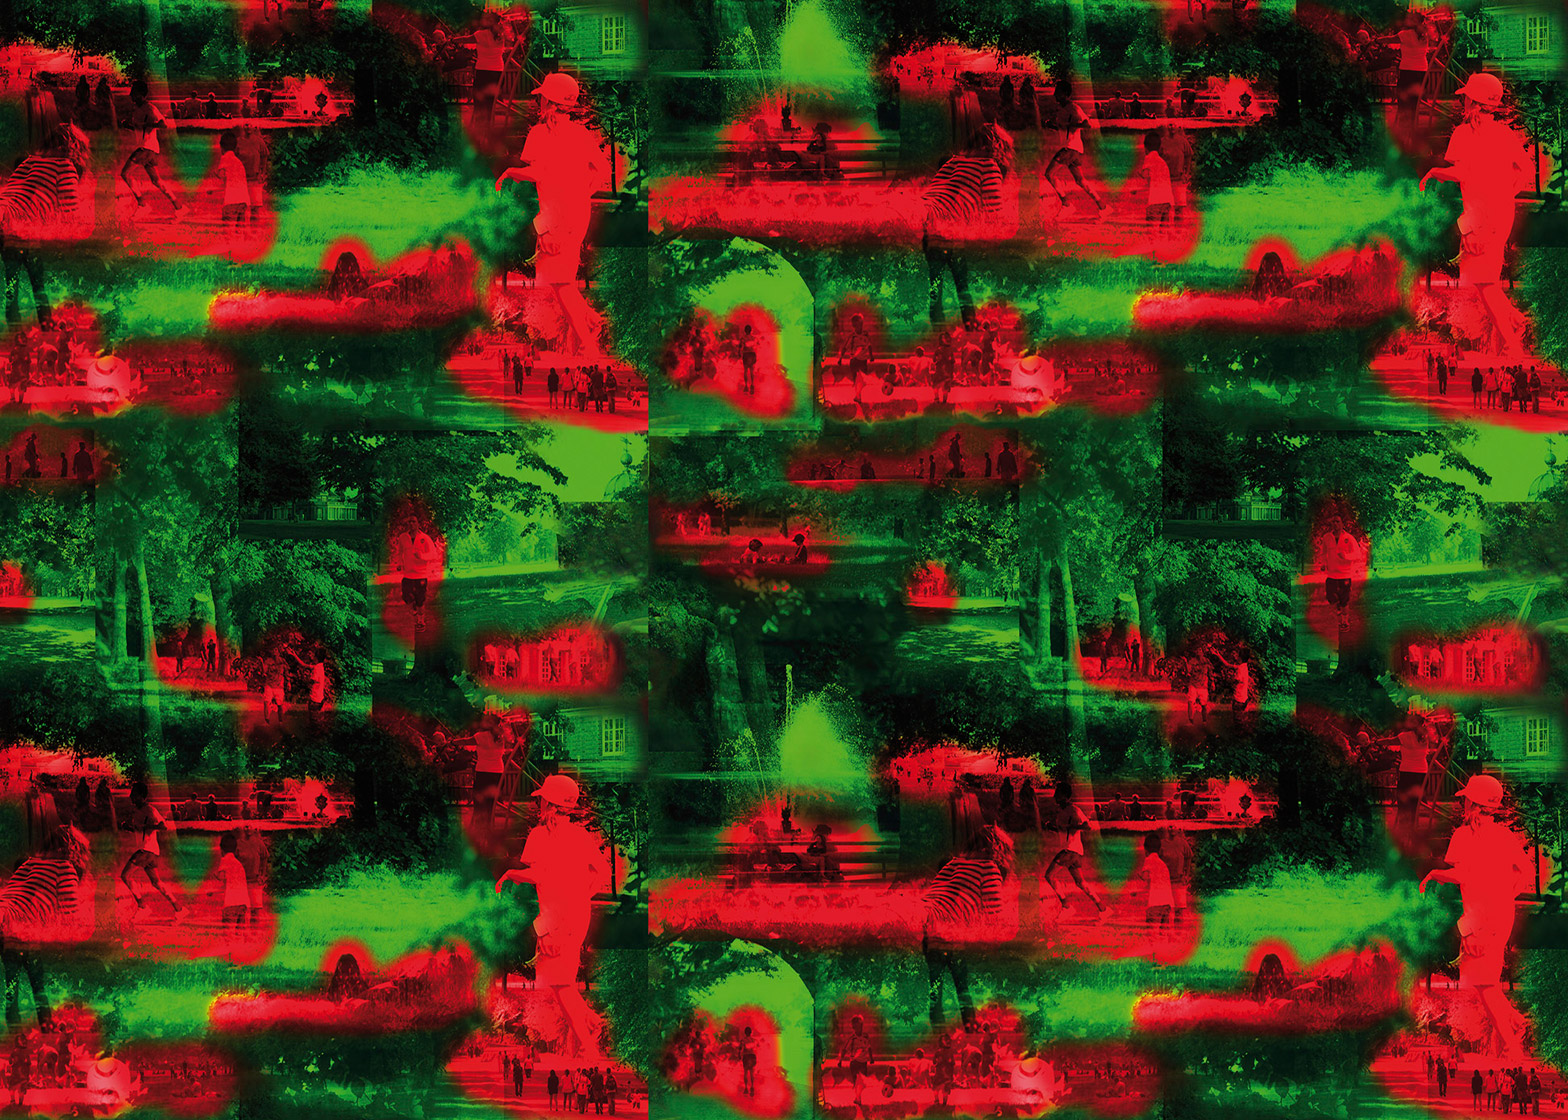 Jean Nouvel designs red and green wallpaper for the Summer Hours range by Maharam